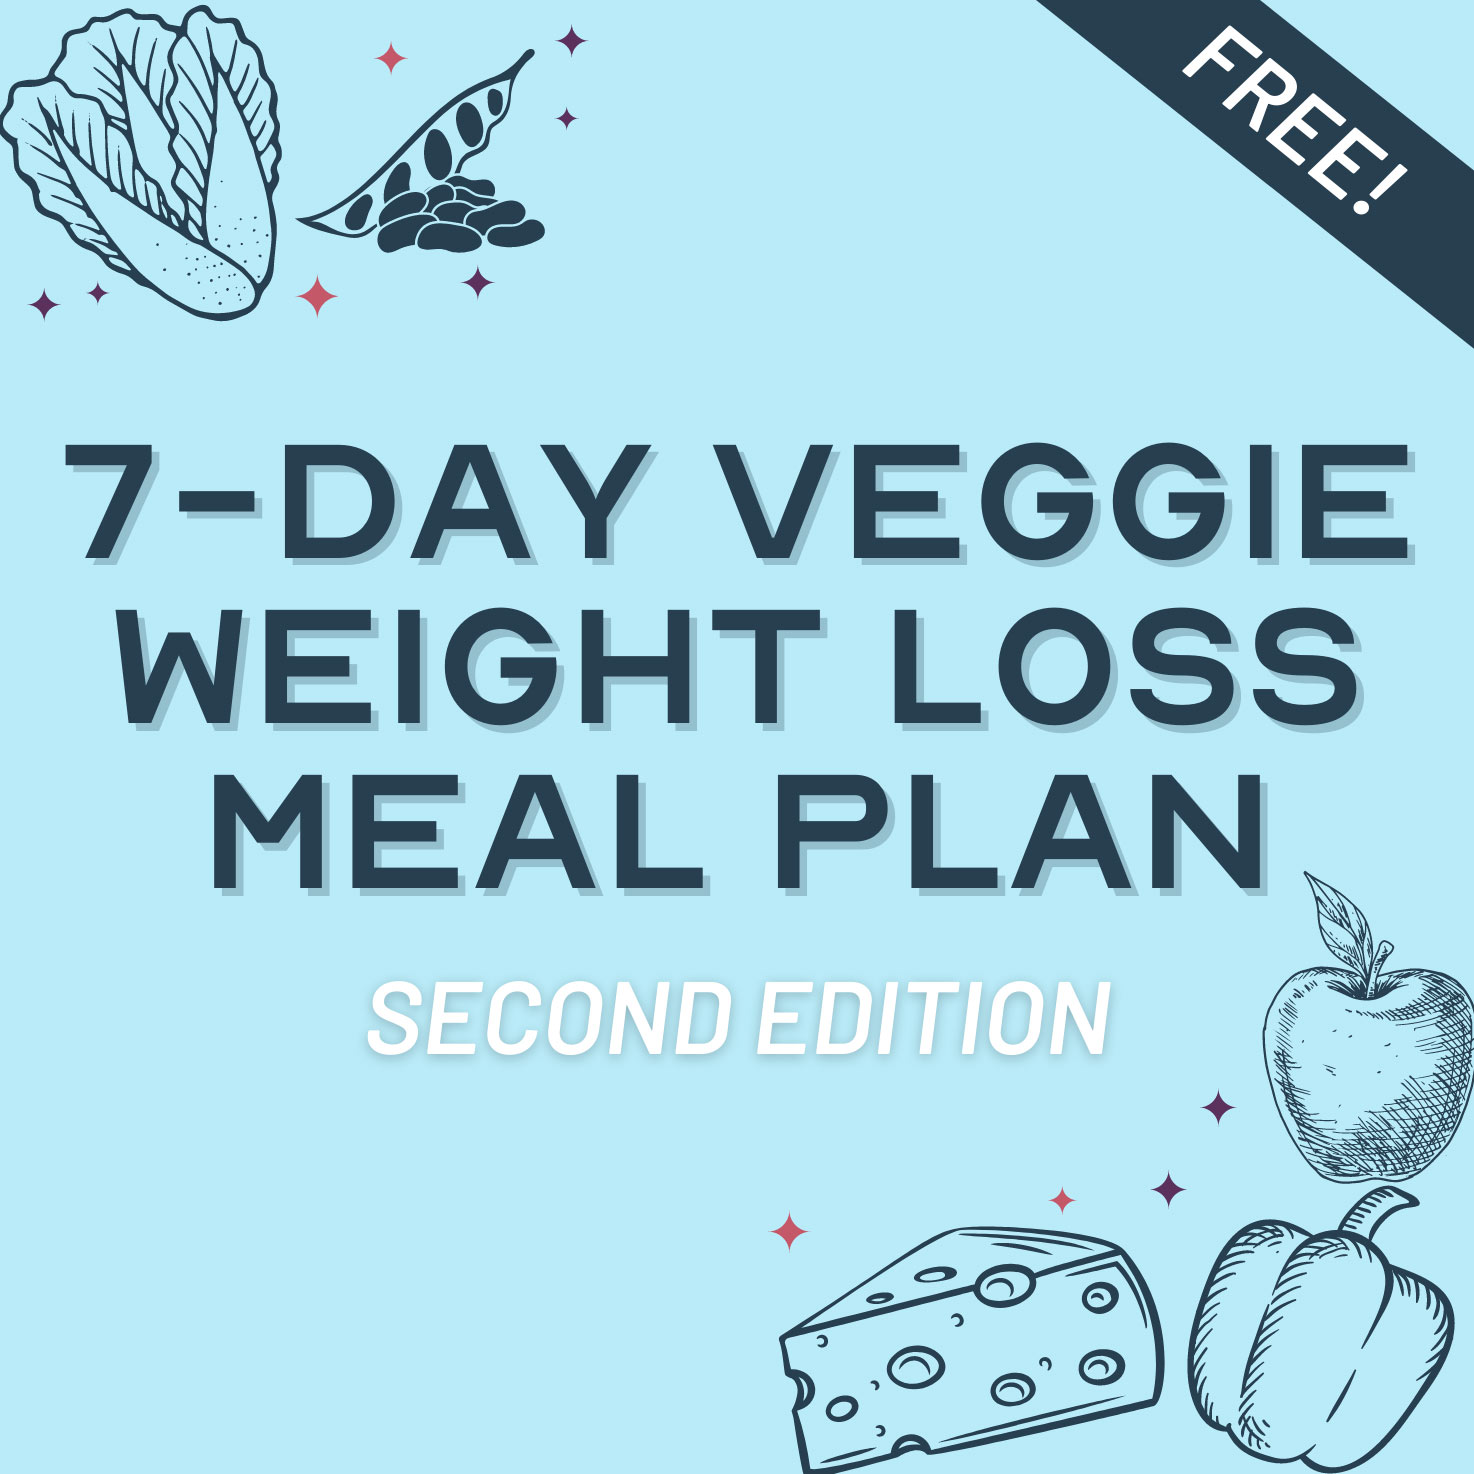 7-Day Vegetarian Weight Loss Meal Plan 1500 kcal/day - Free Download